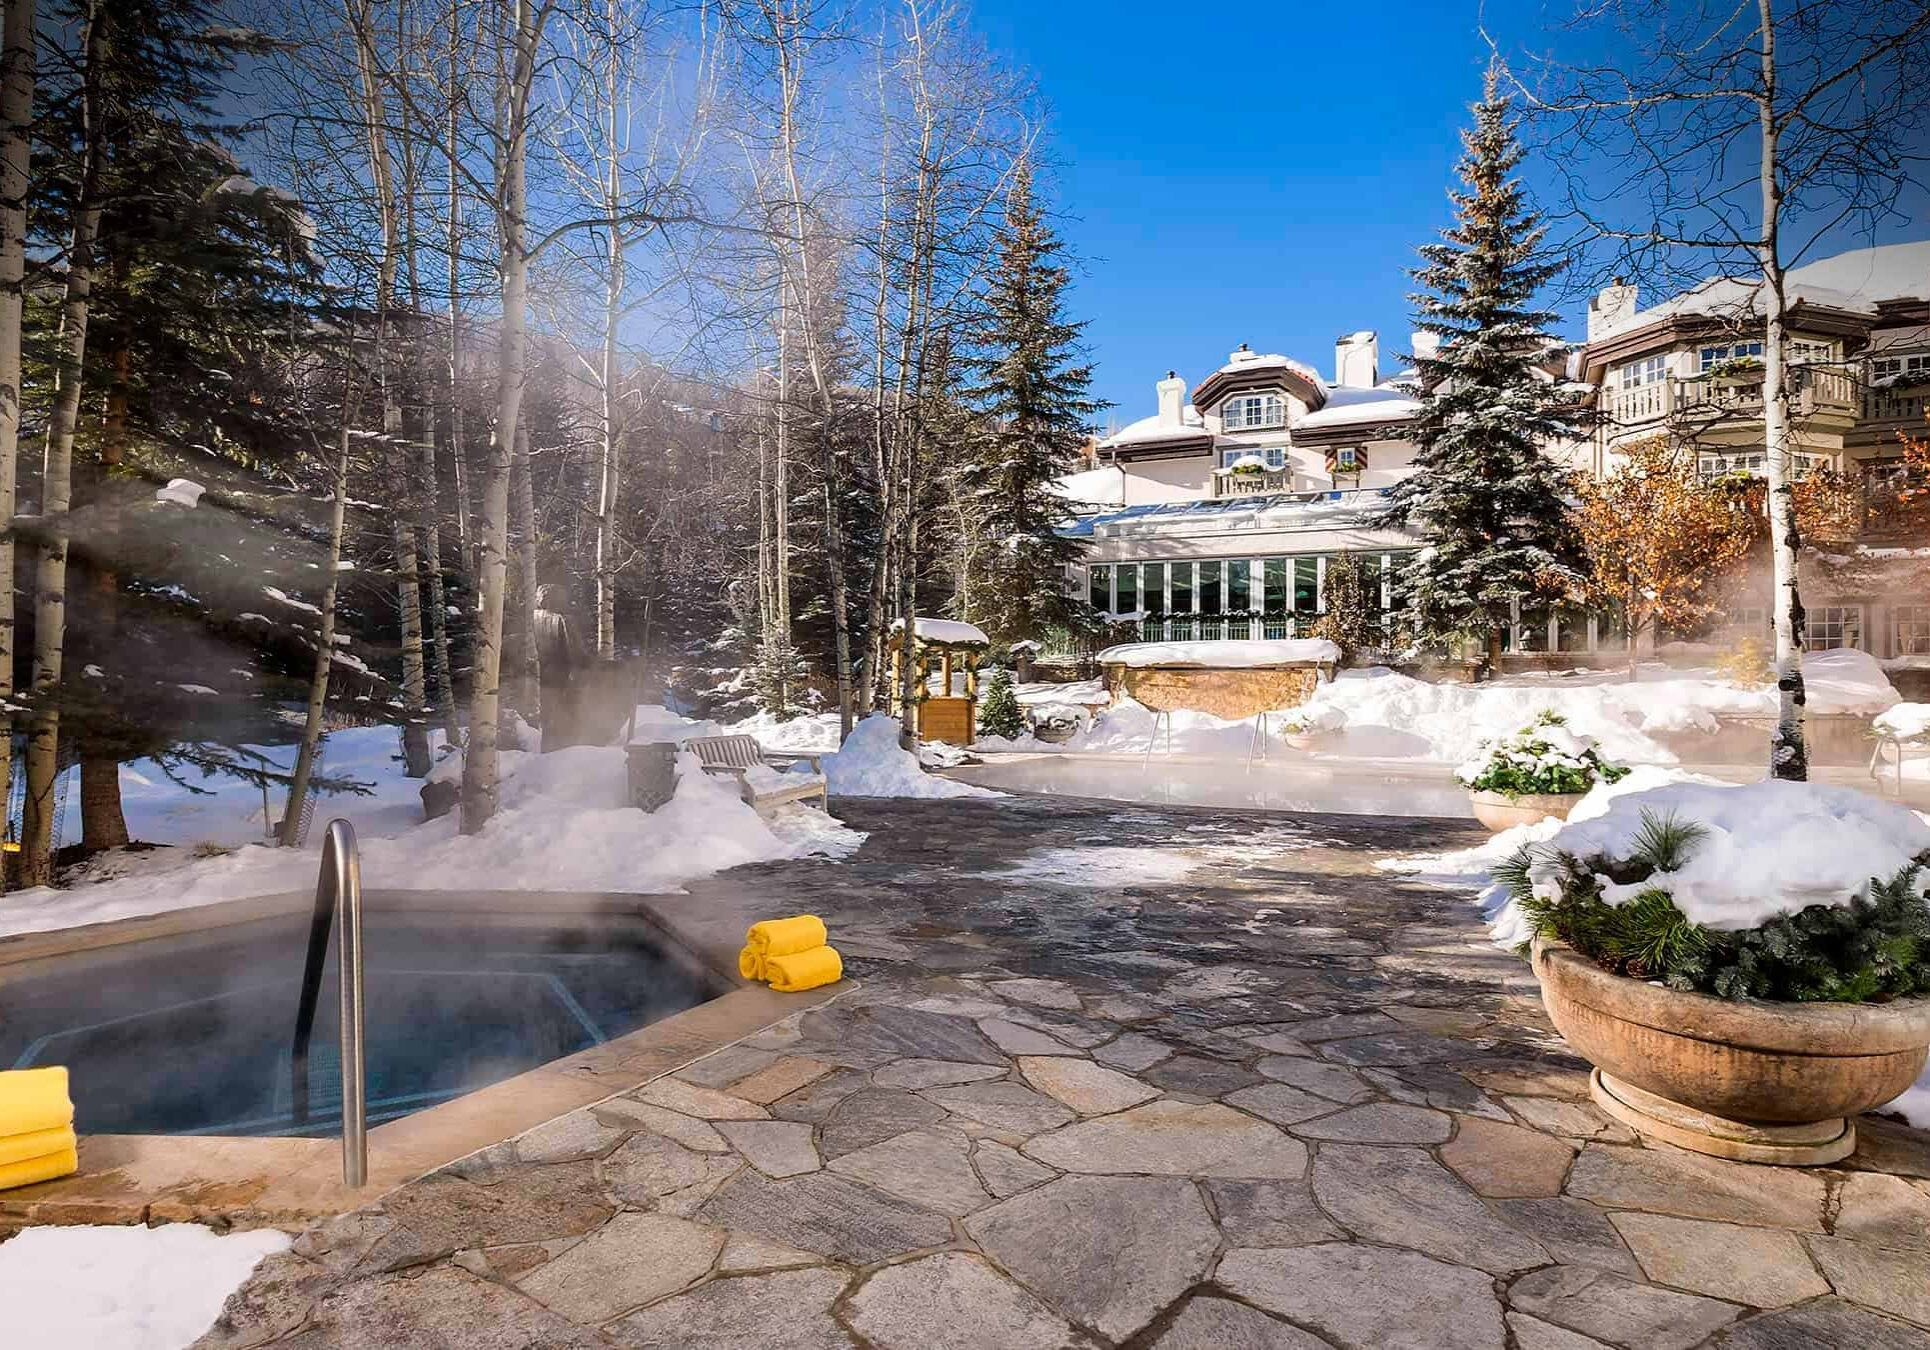 Steam rises from hot tub on a sunny day, as snow covers the ground and spa building is visible in the background